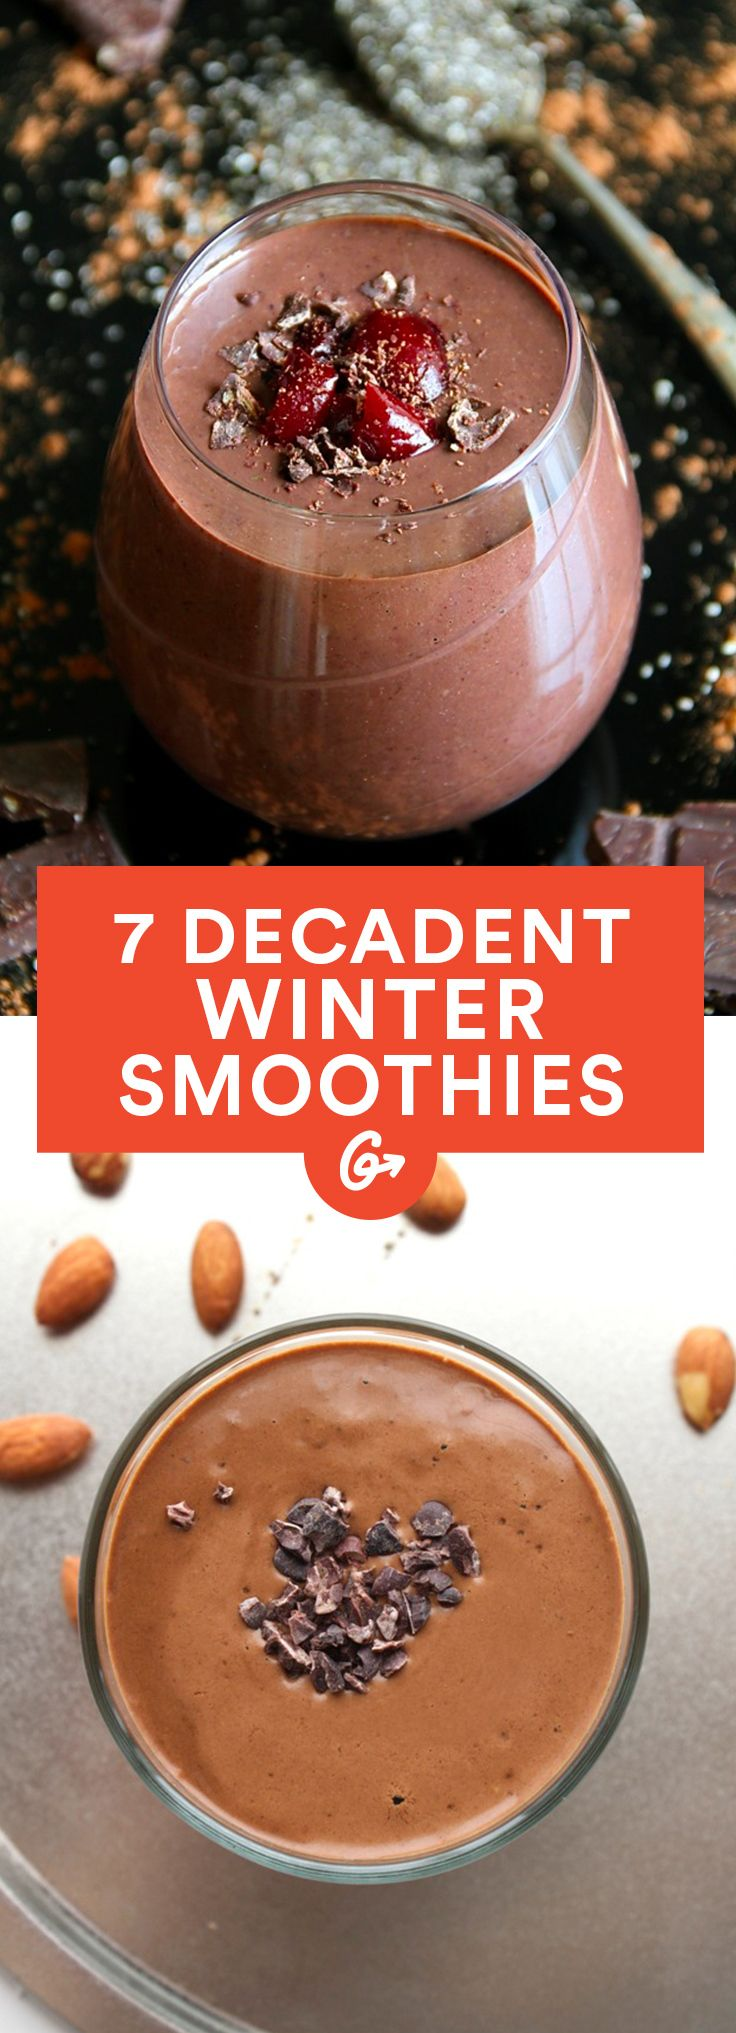 7 Decadent Winter Smoothie You'll Want to Drink Year Round #winter #smoothie #recipes http://greatist.com/eat/winter-smoothie-recipes